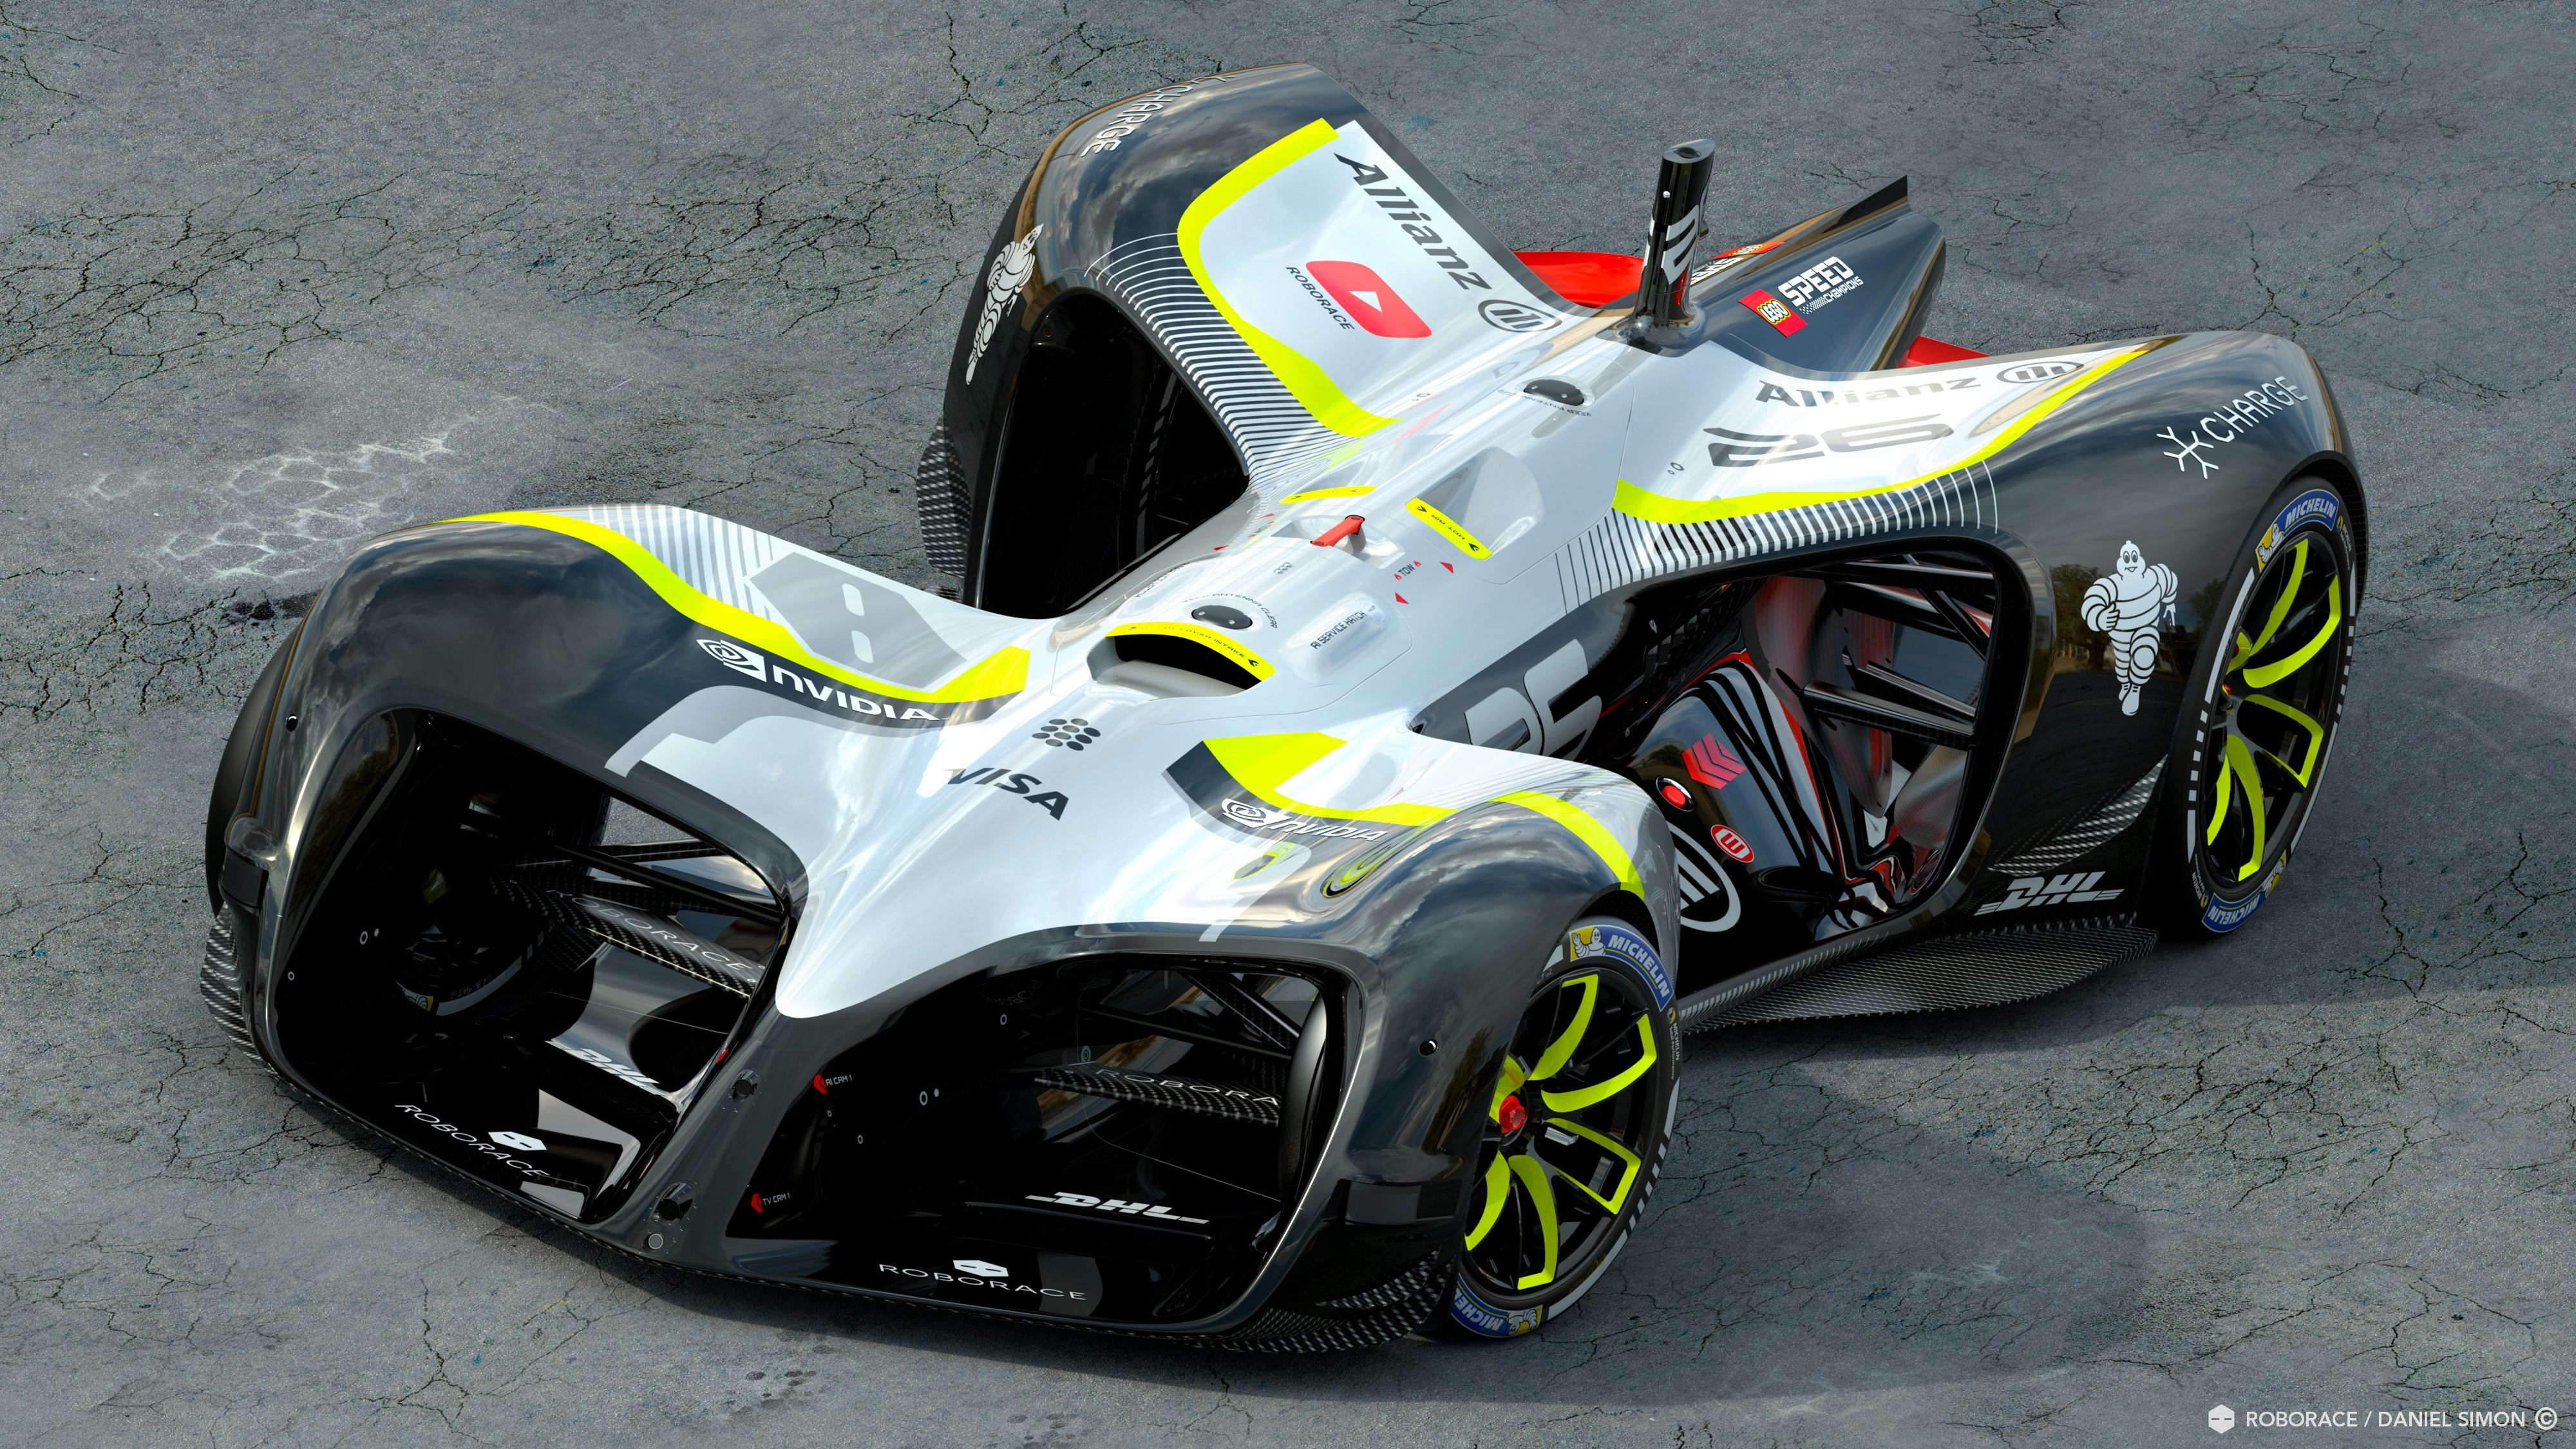 Driving Racing Car >> This 199 Mph Dog Bone Is Roborace S Actual Self Driving Race